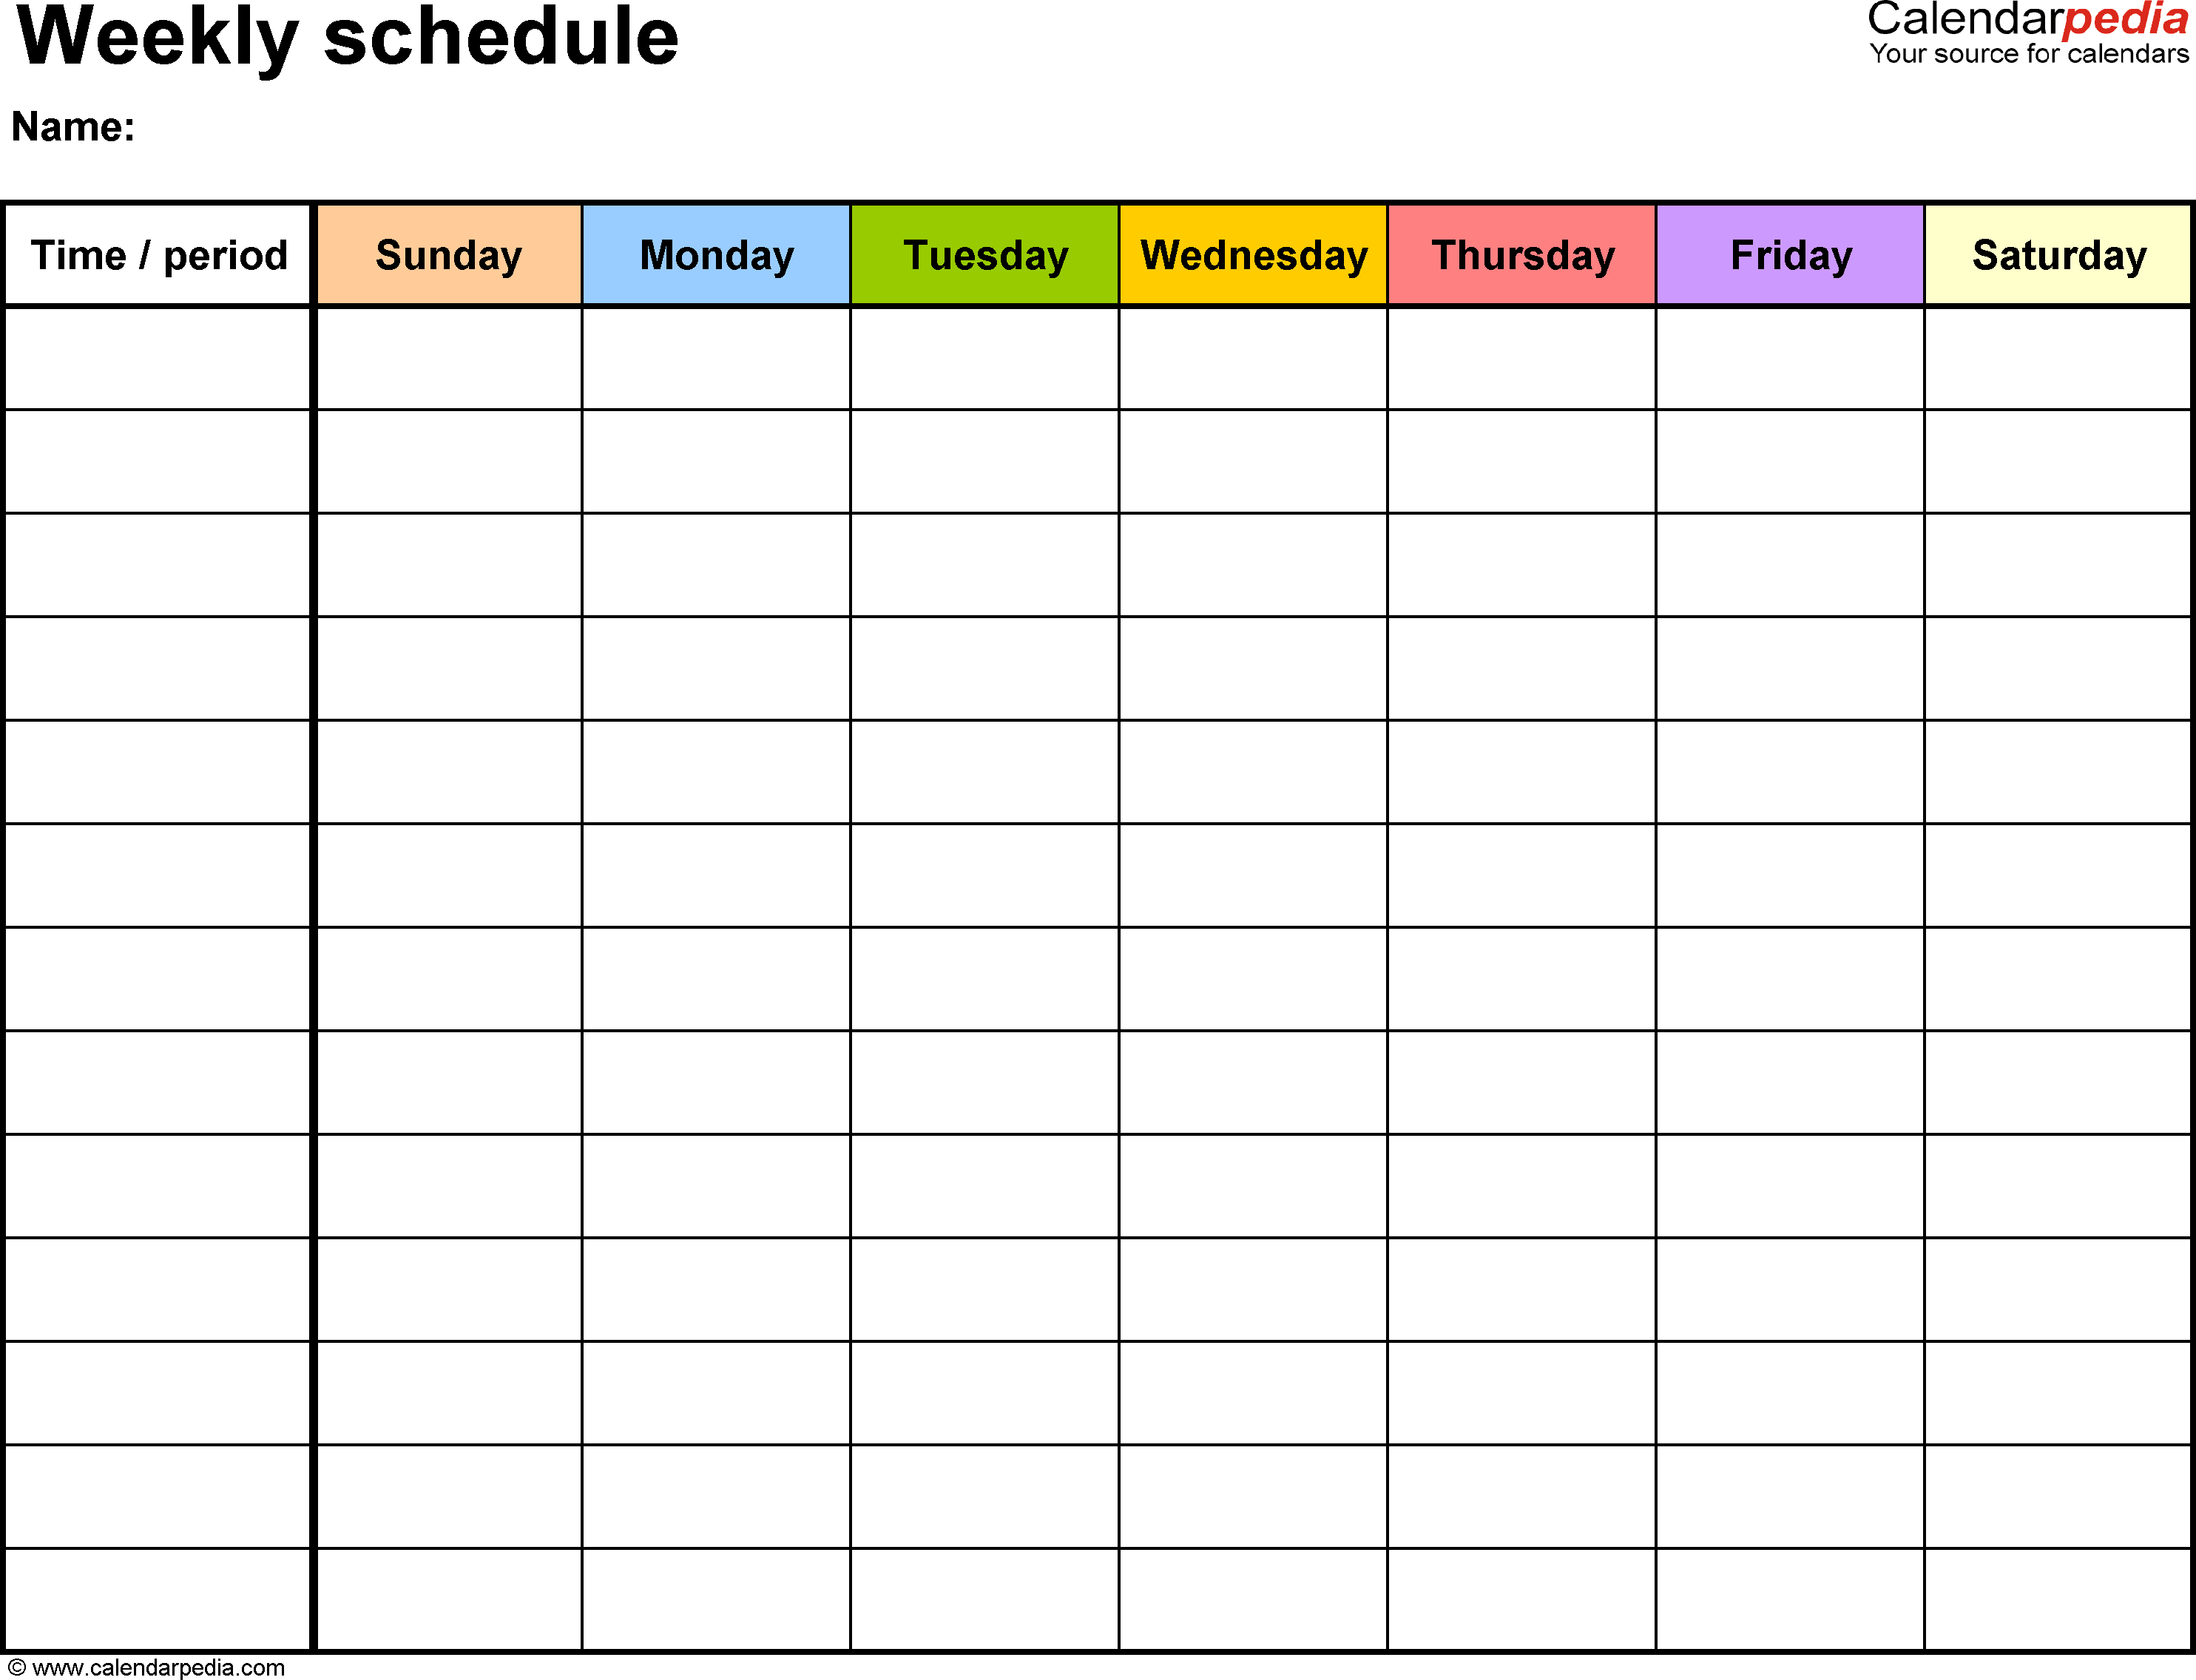 Free Weekly Schedule Templates For Word - 18 Templates regarding Editable Weekly Calendar Template